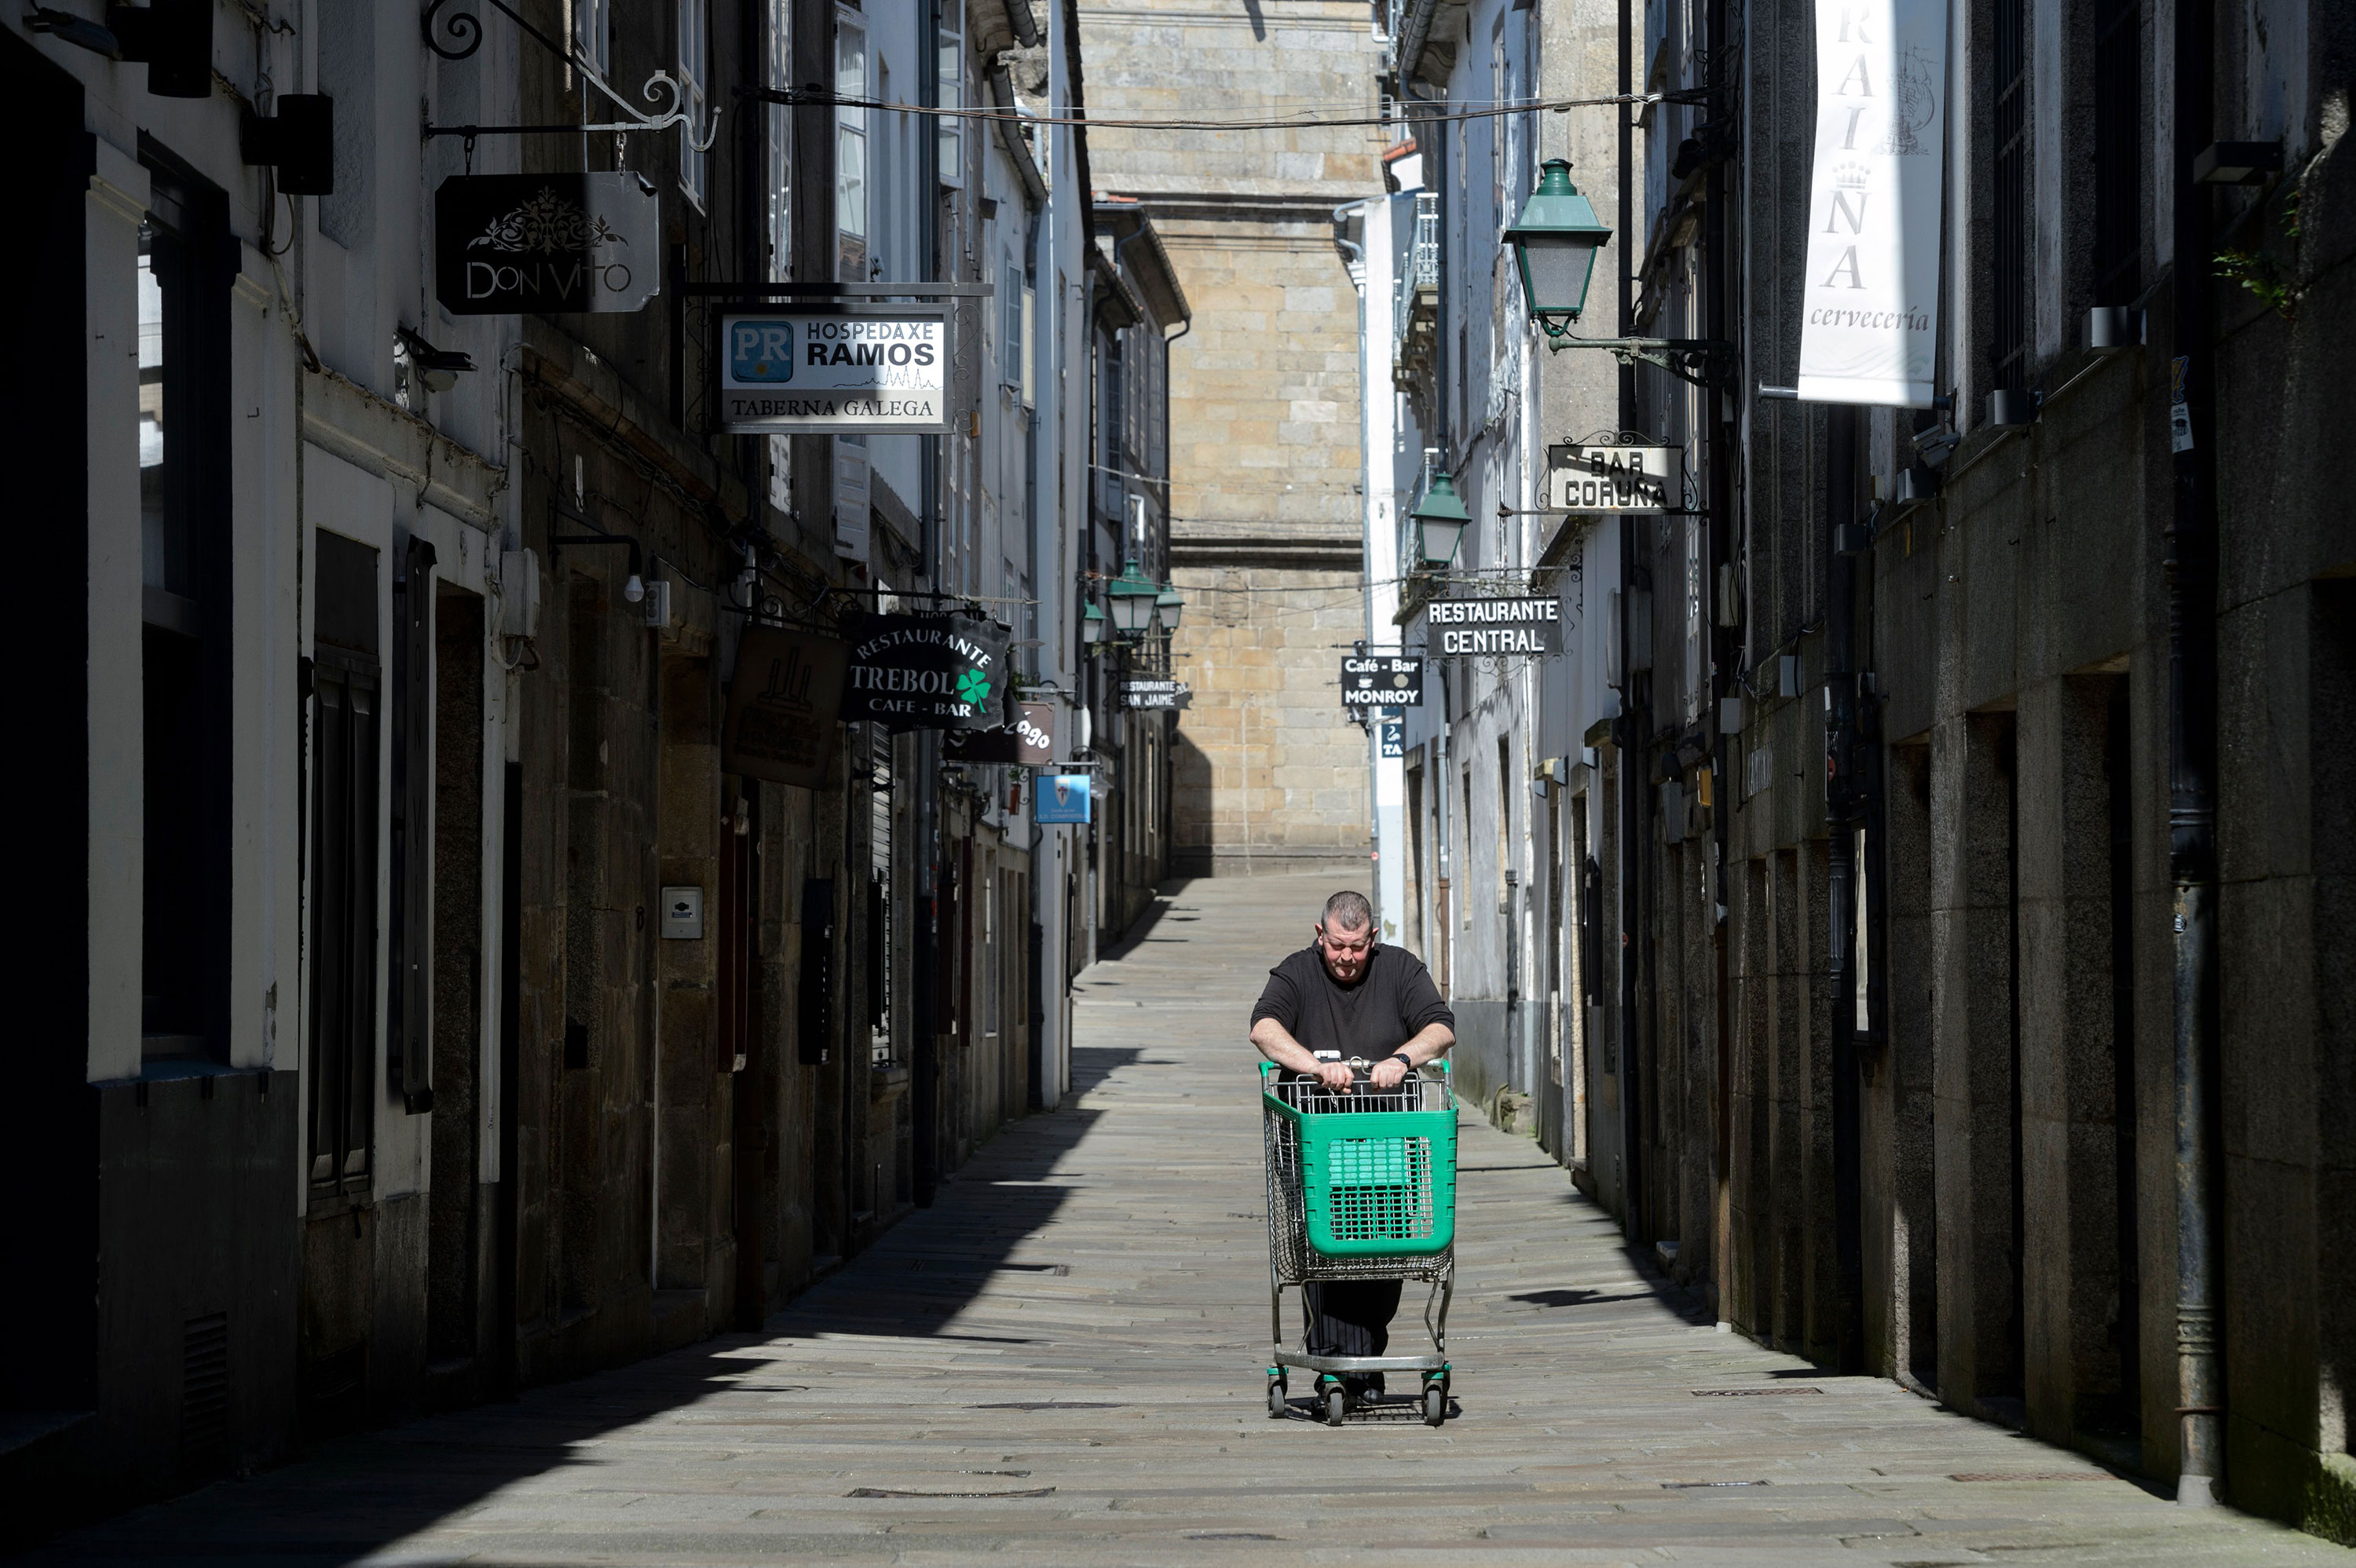 A man pushes an empty cart in Santiago de Compostela, on March 14, 2020 after regional authorities ordered all shops in the region be shuttered from today through March 26, save for those selling food, chemists and petrol stations, in order to slow the coronavirus spread. (Photo by MIGUEL RIOPA / AFP) (Photo by MIGUEL RIOPA/AFP via Getty Images)